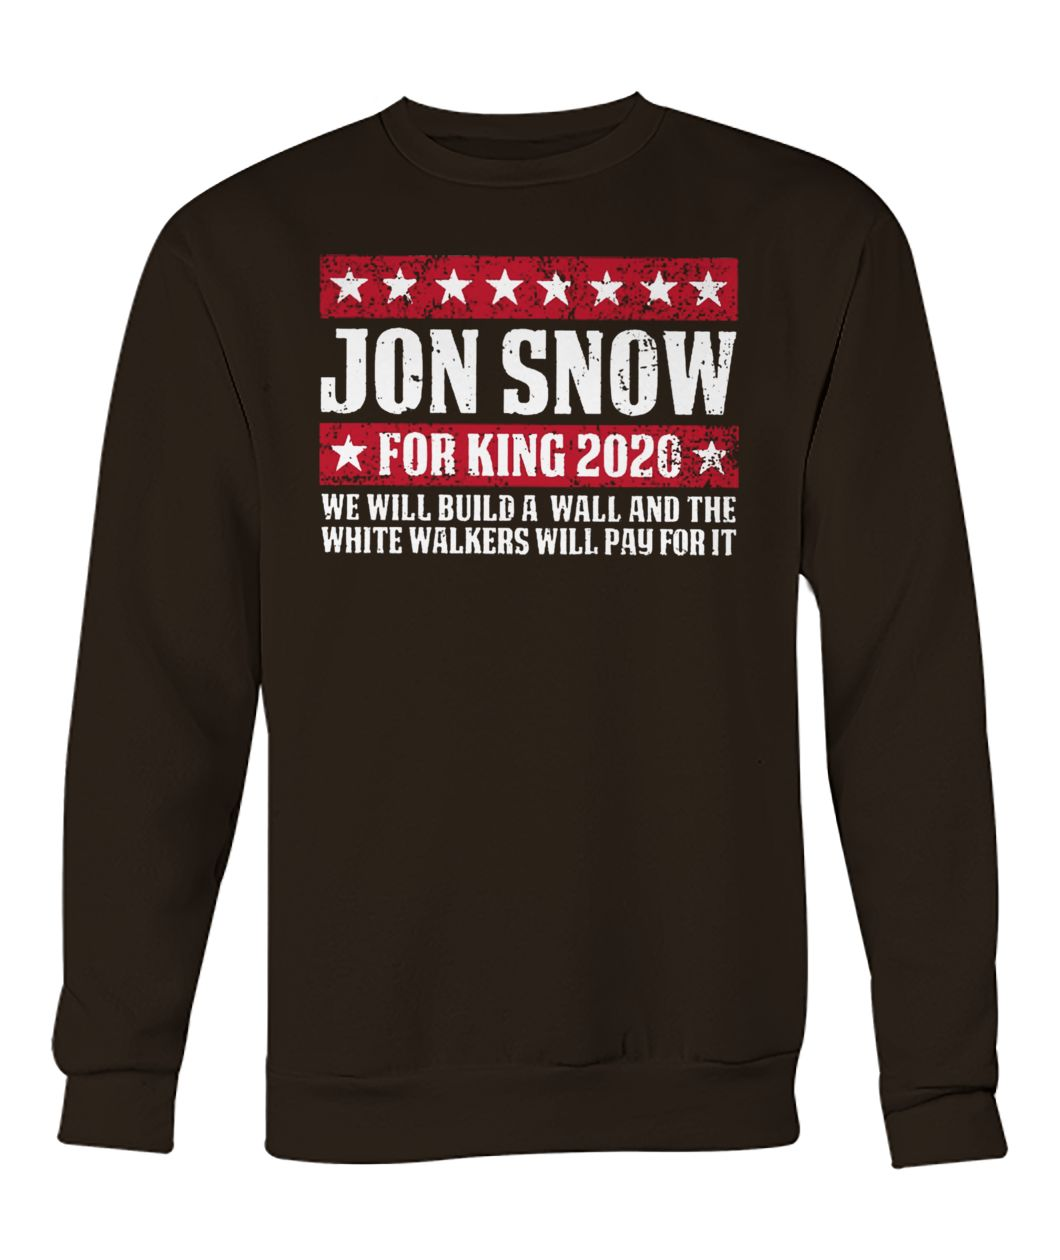 Game of thrones Jon snow for king 2020 crew neck sweatshirt